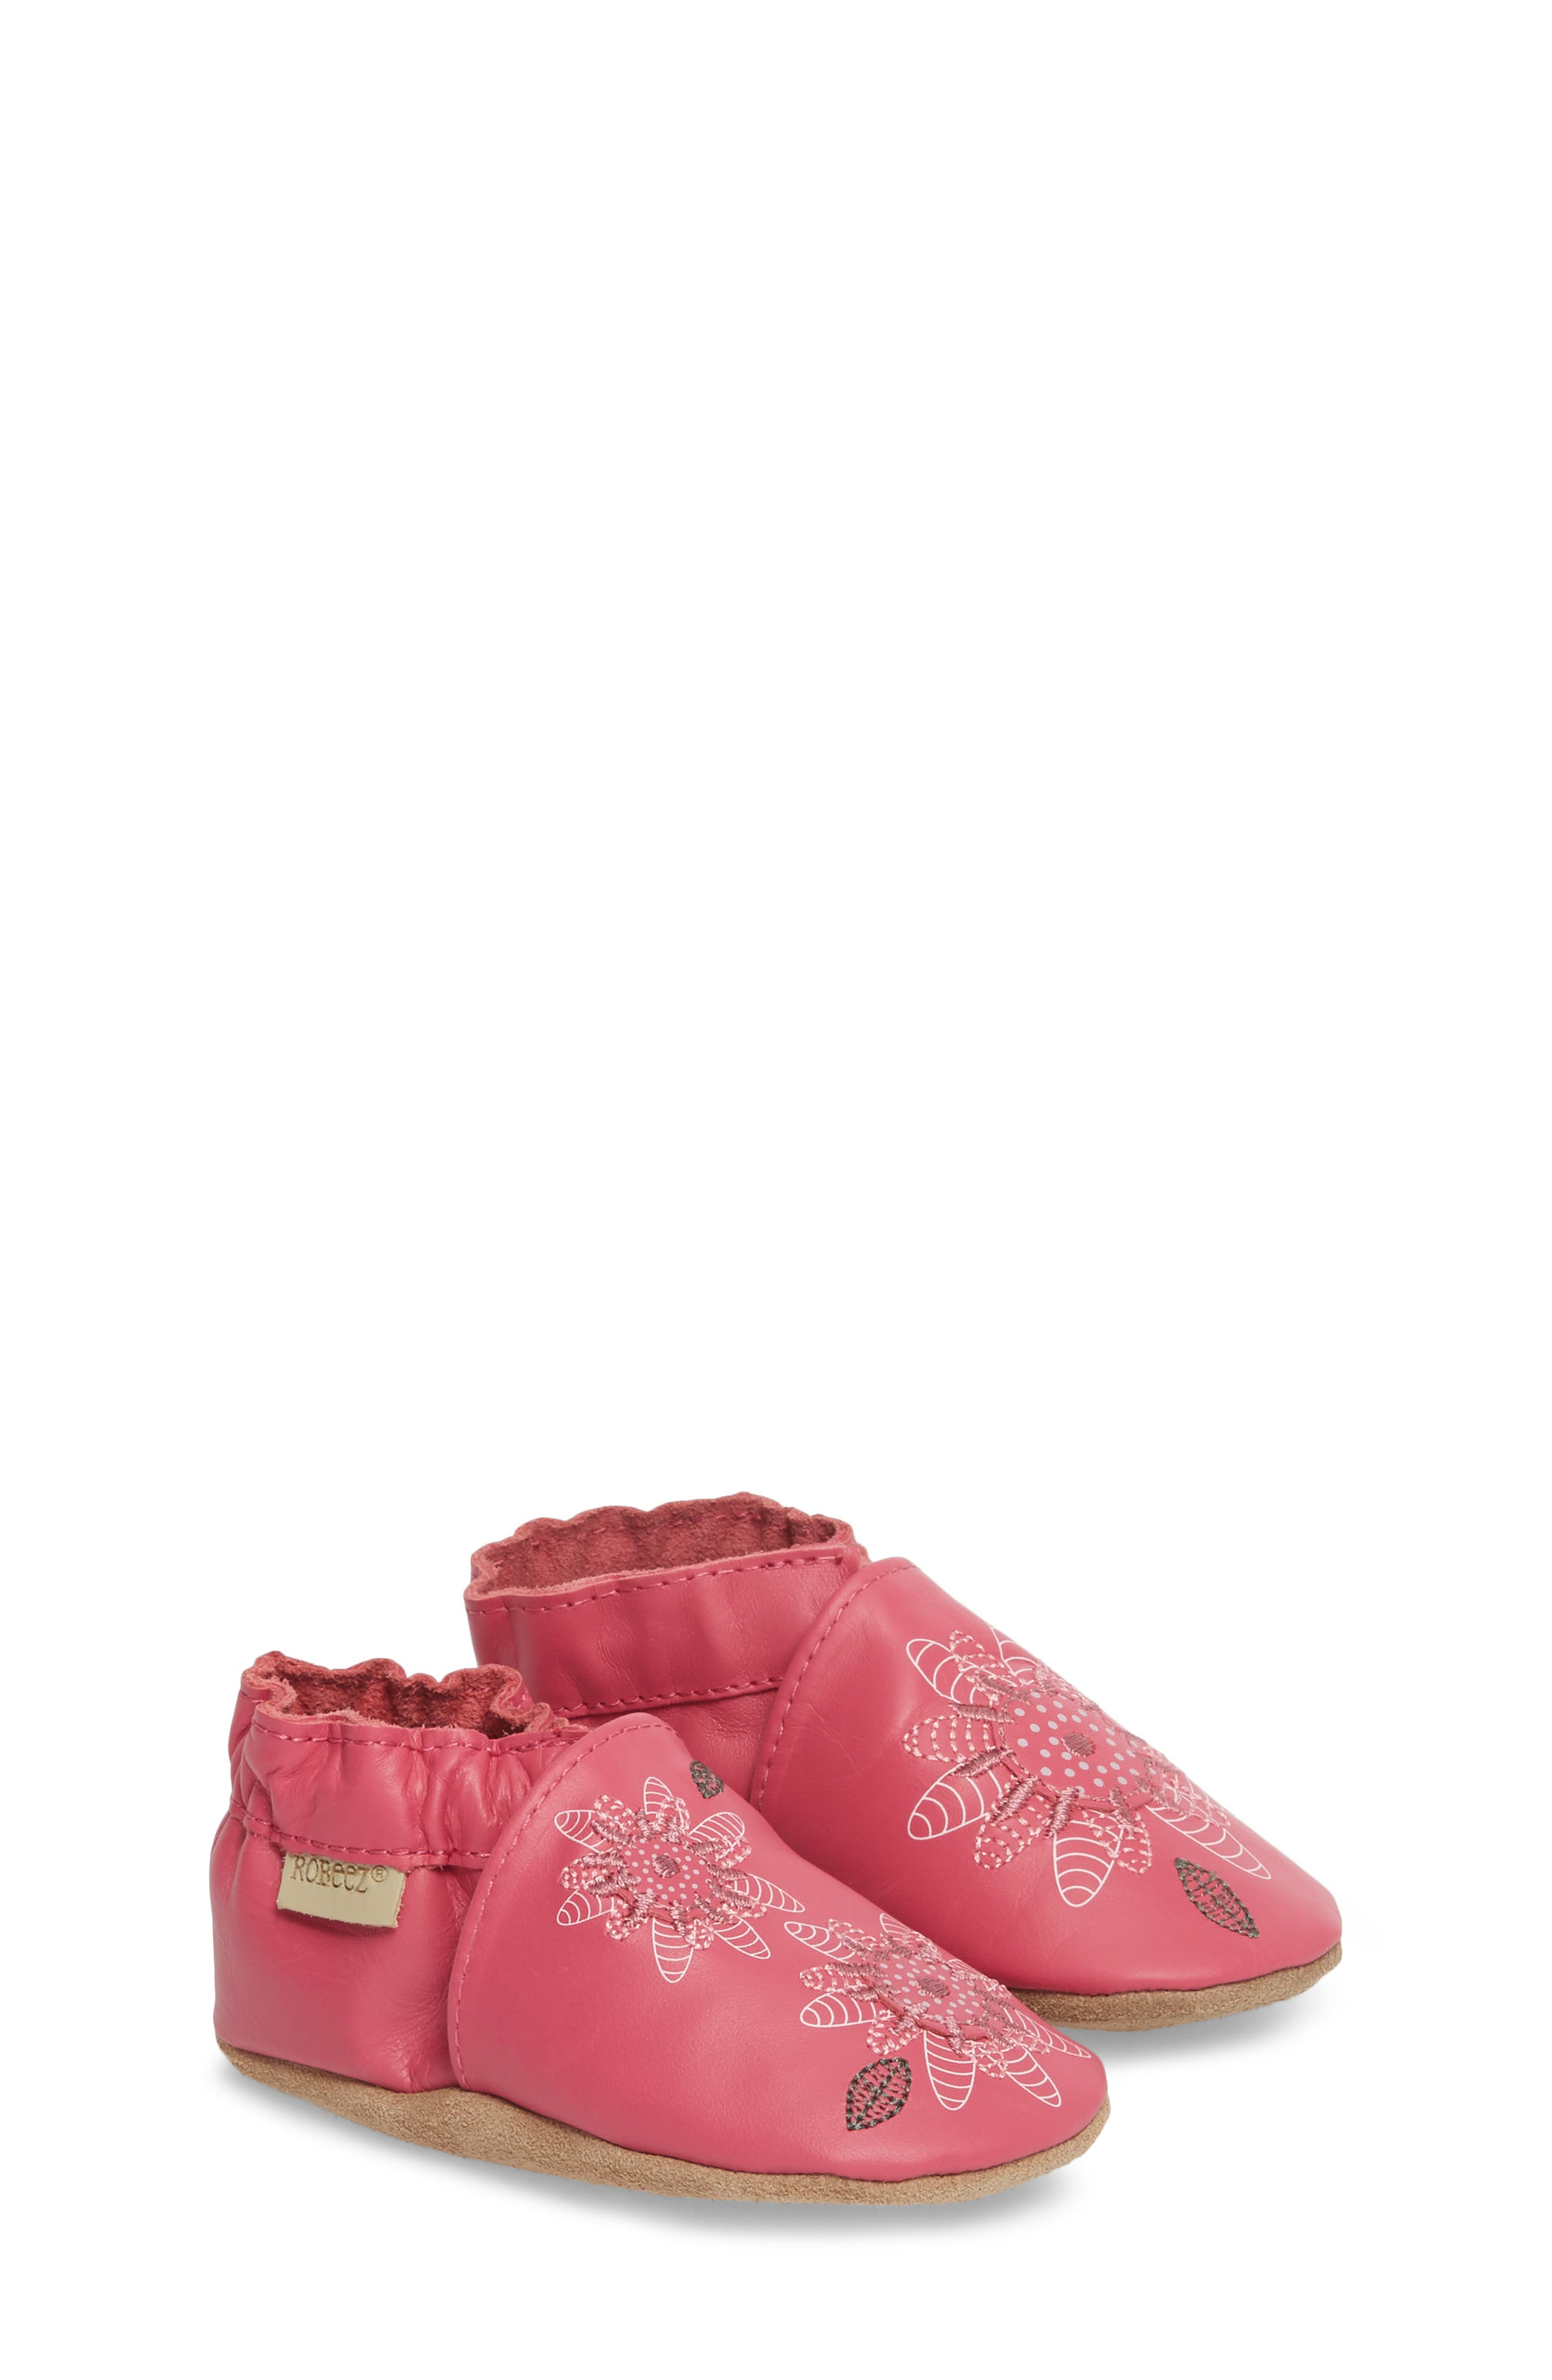 ROBEEZ<SUP>®</SUP> Fiona Flower Moccasin Crib Shoe, Main, color, HOT PINK